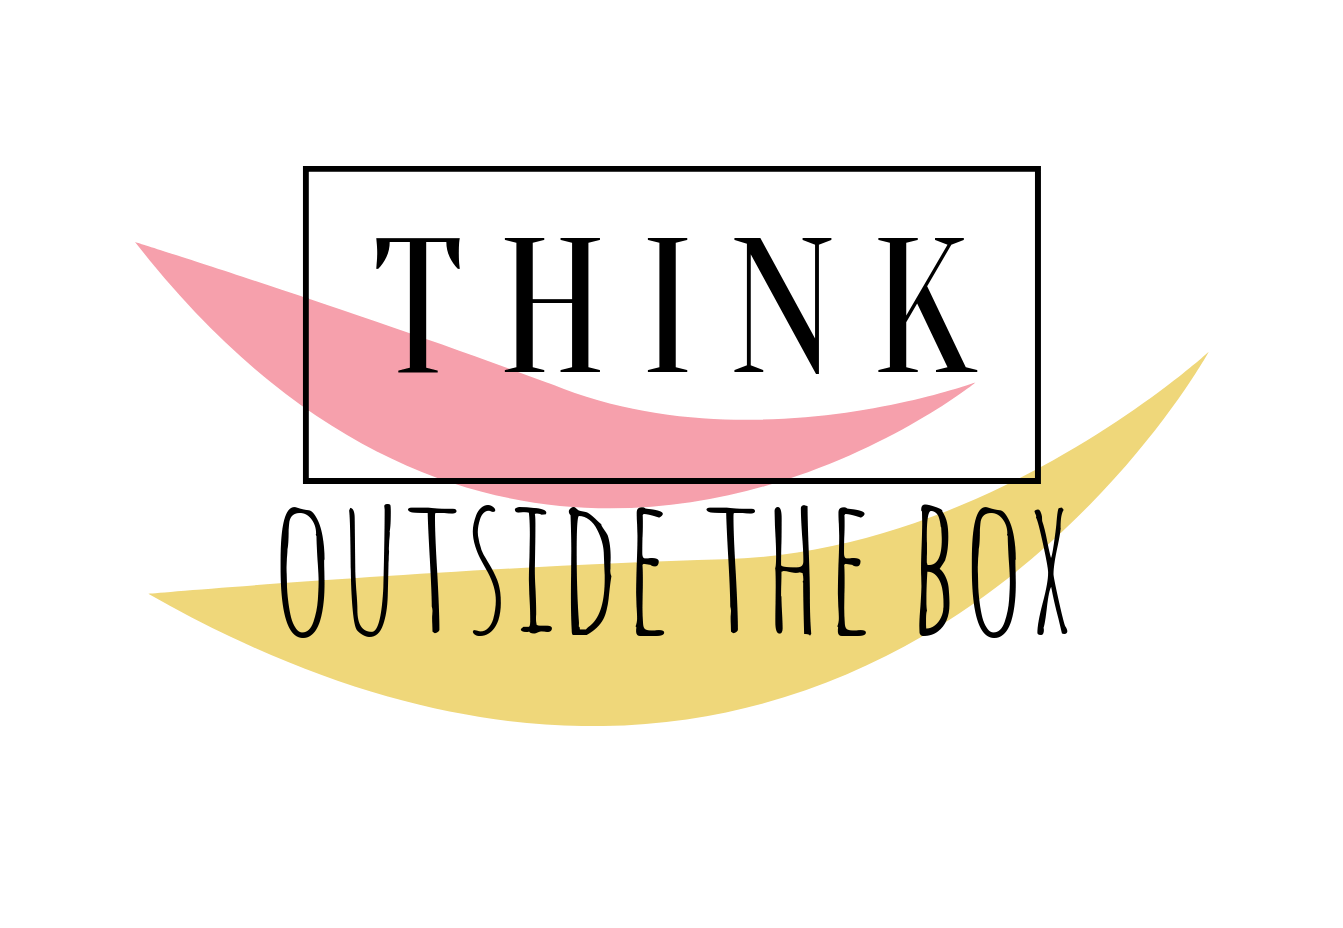 Design Think Outside the Box